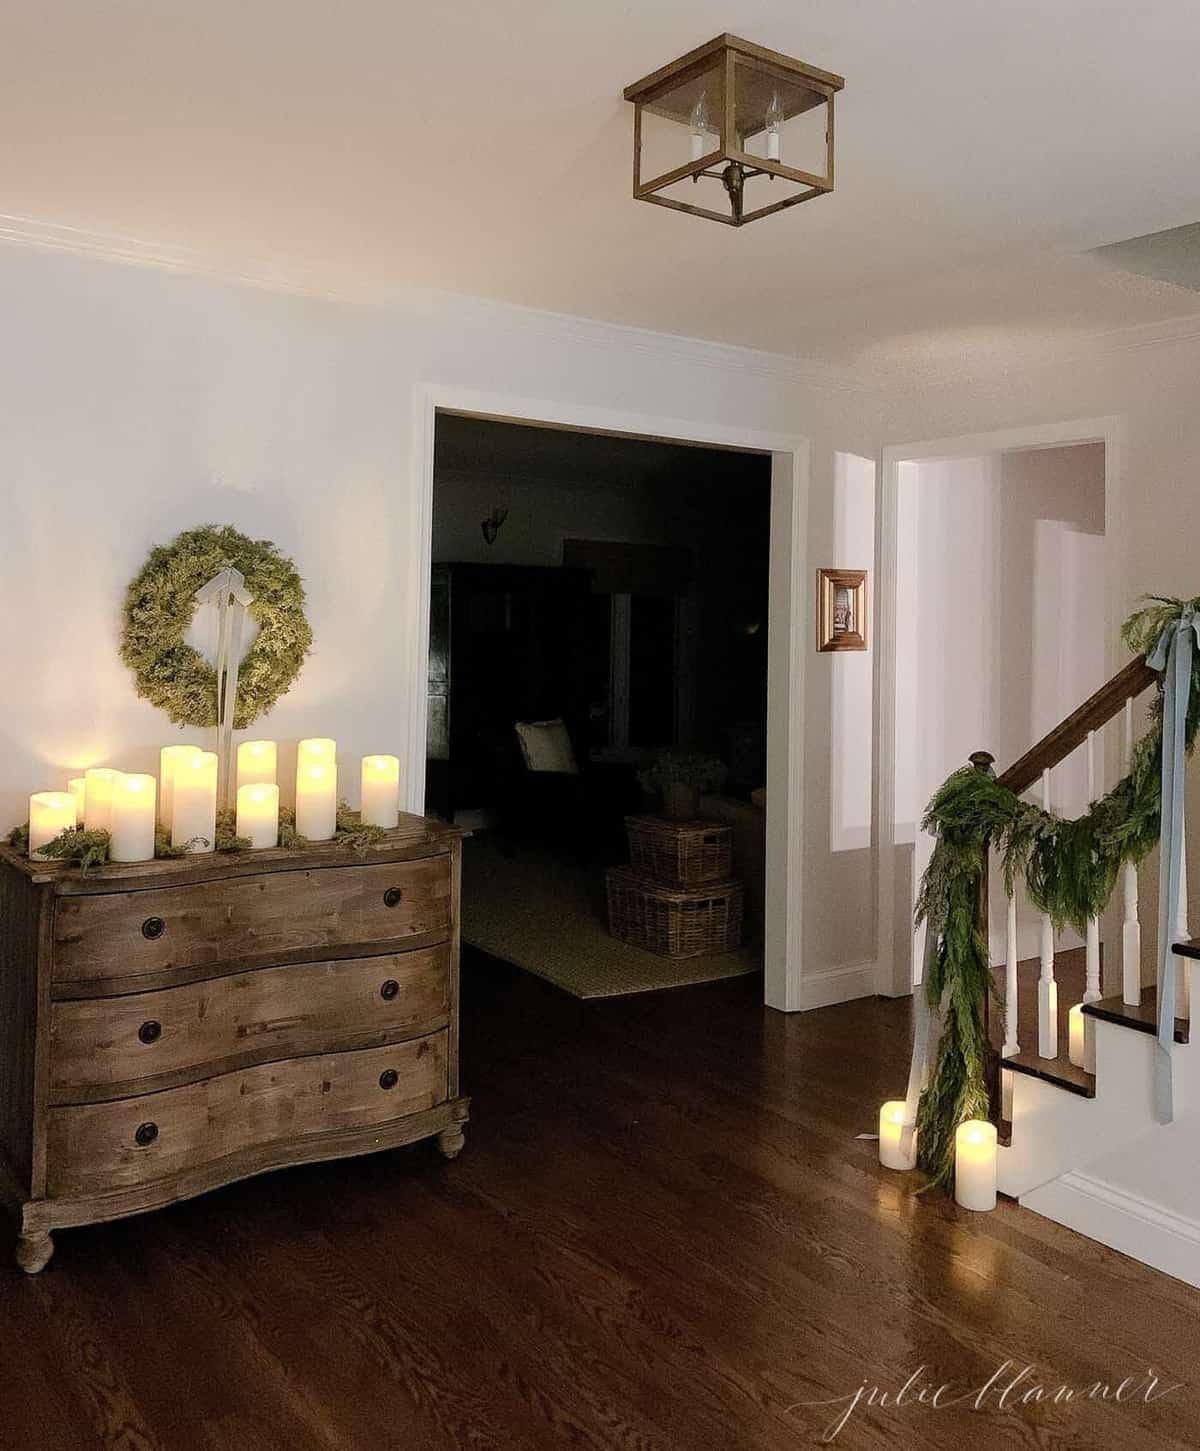 Darkly lit entryway at night, candles and evergreens decorating for Christmas.